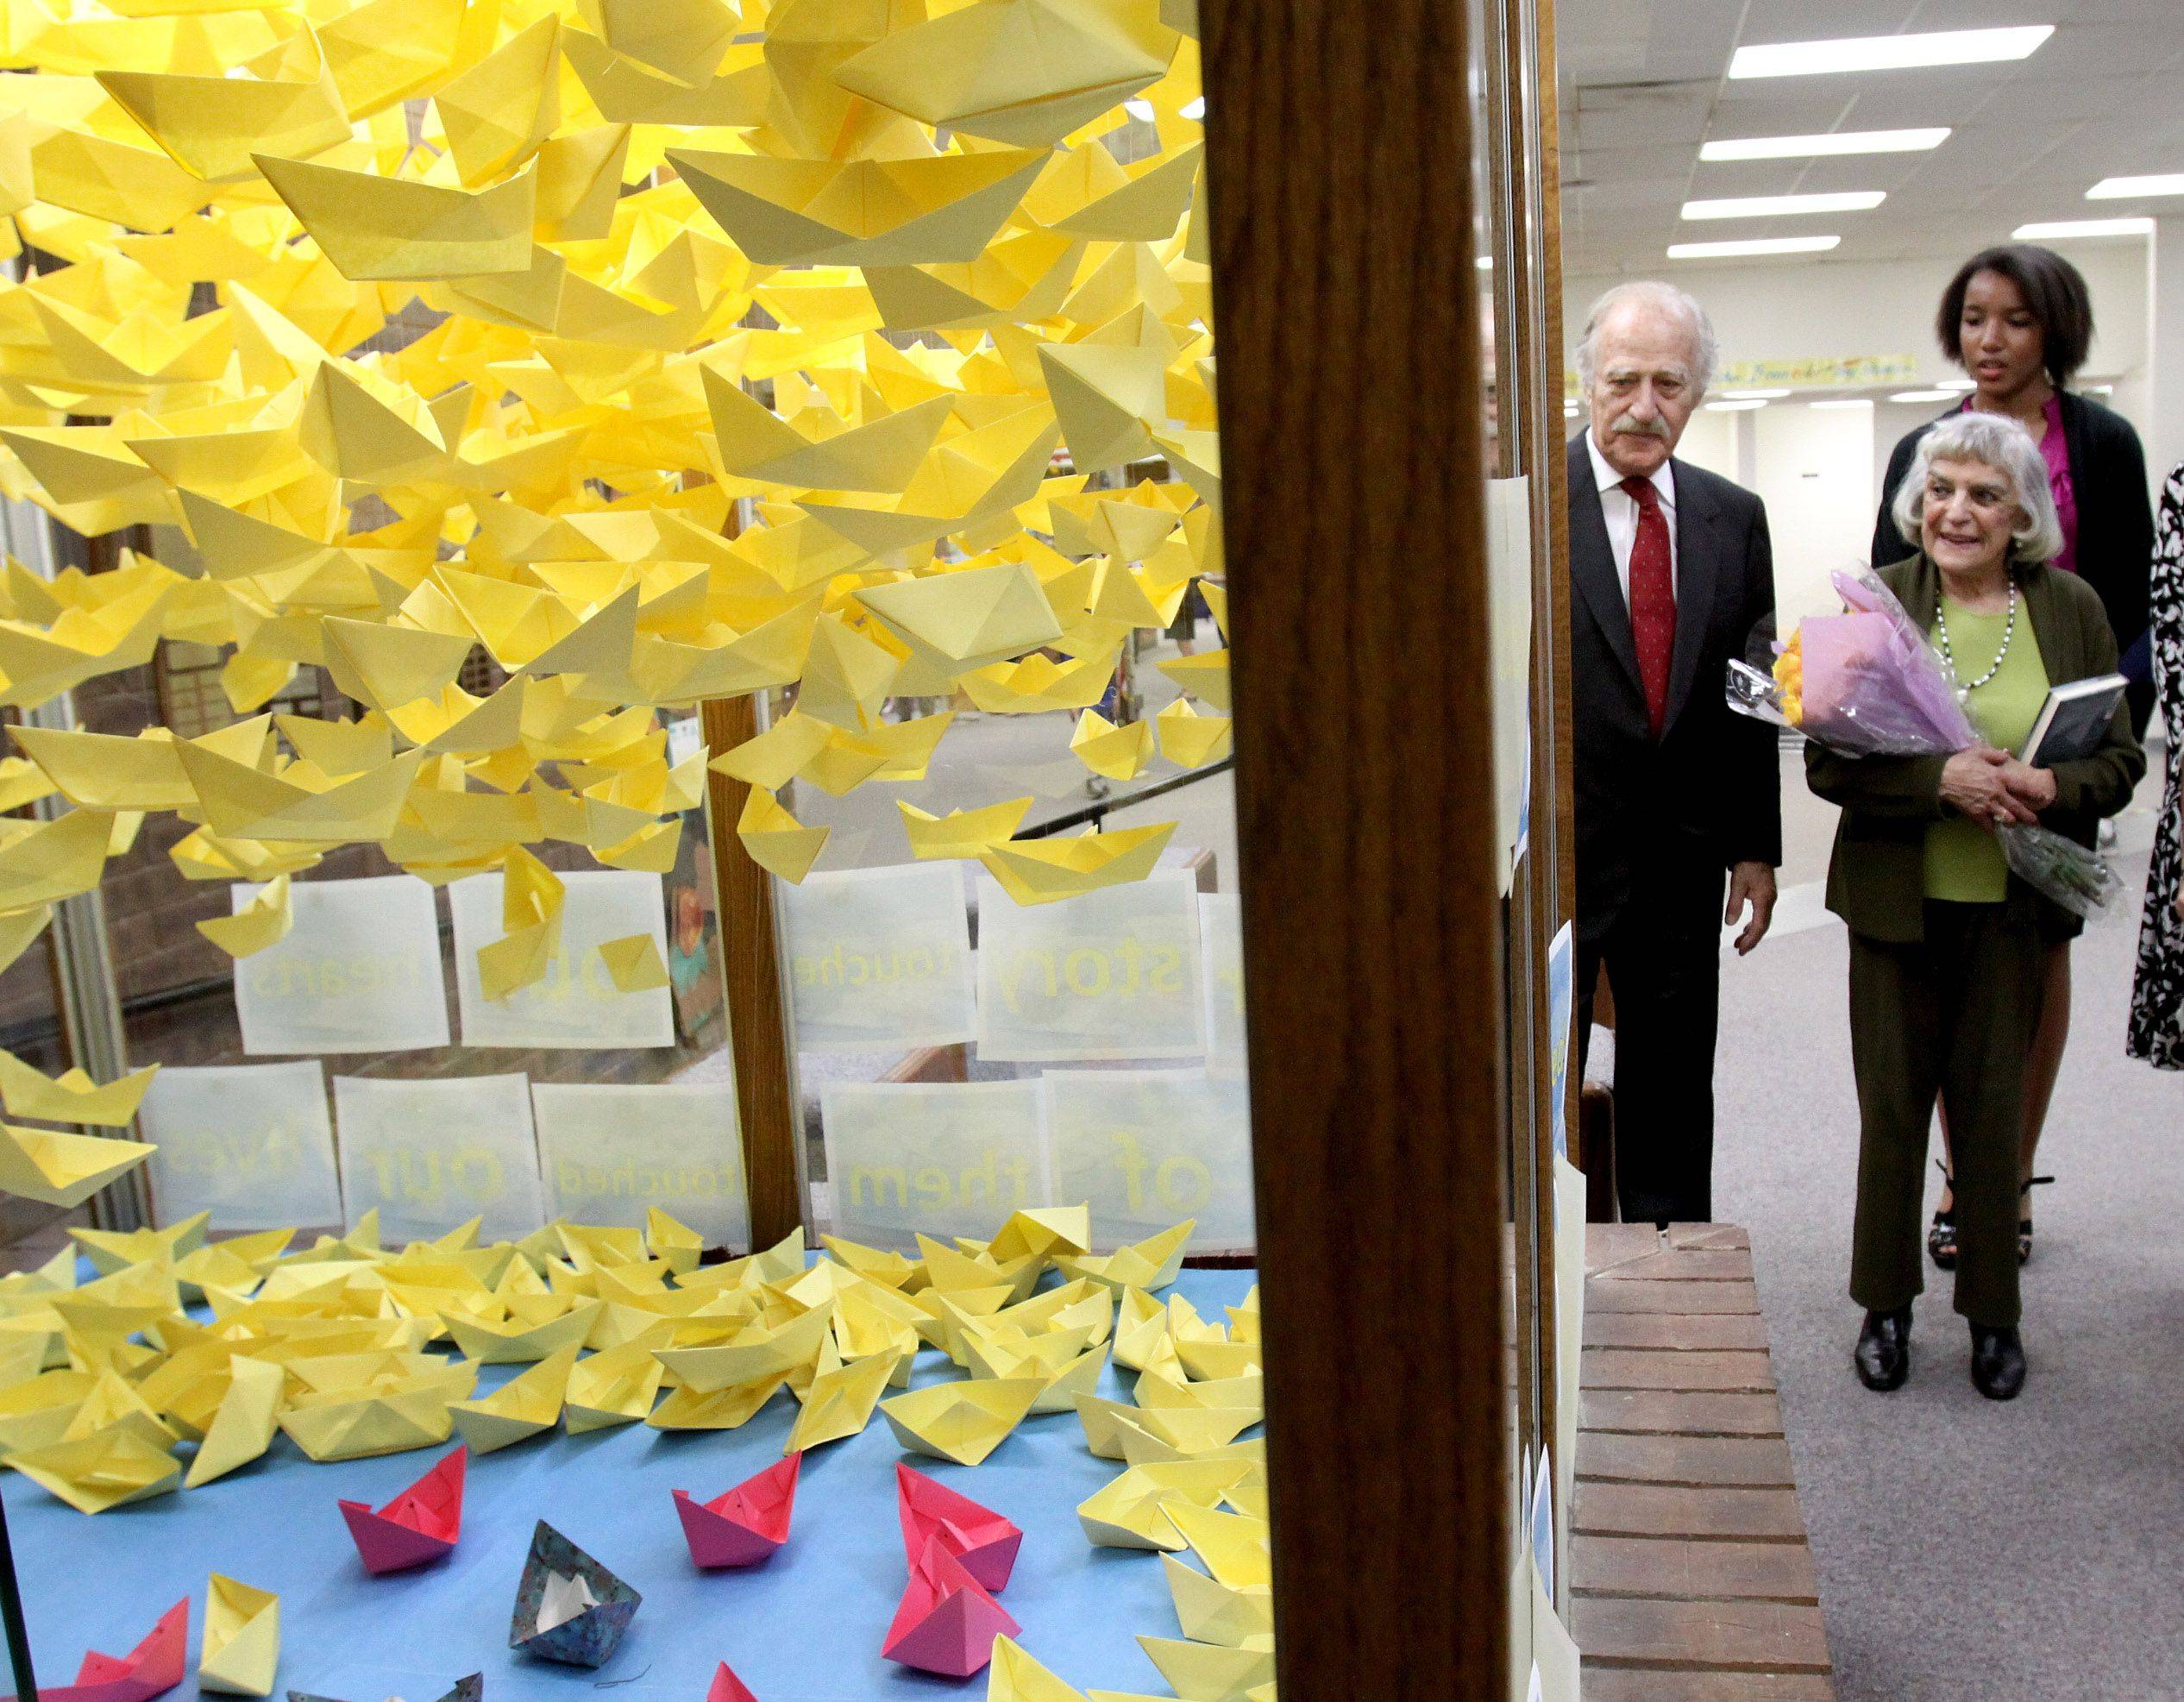 Edith Westerfeld and her husband Larry Breitkopf of Skokie, along with eighth-grader Casey Smith, take a look at a display case of origami boats, which represent the children who escaped Nazi Germany.